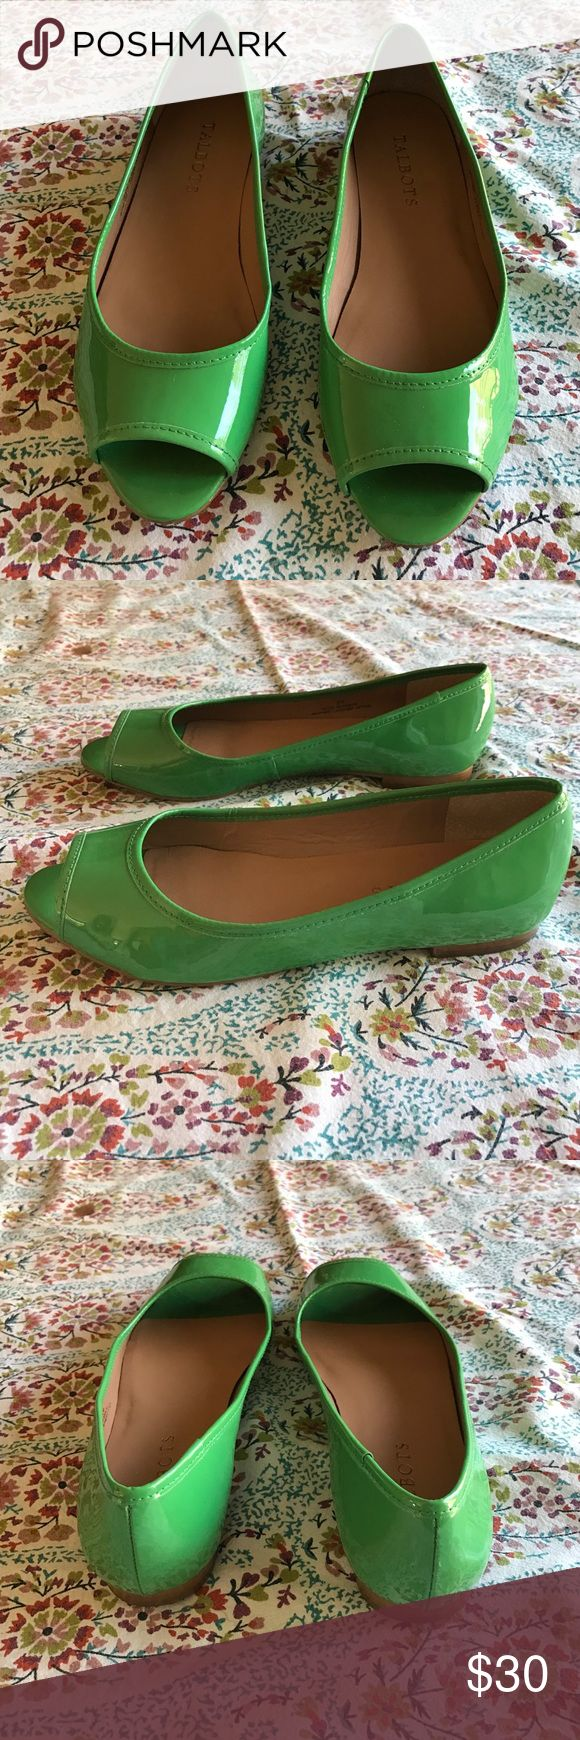 Talbots open toe flats Adorable patent leather flats from Talbots. Adorable green with brown soles. Open toes for a cute look. Cute and comfy!! Talbots Shoes Flats & Loafers